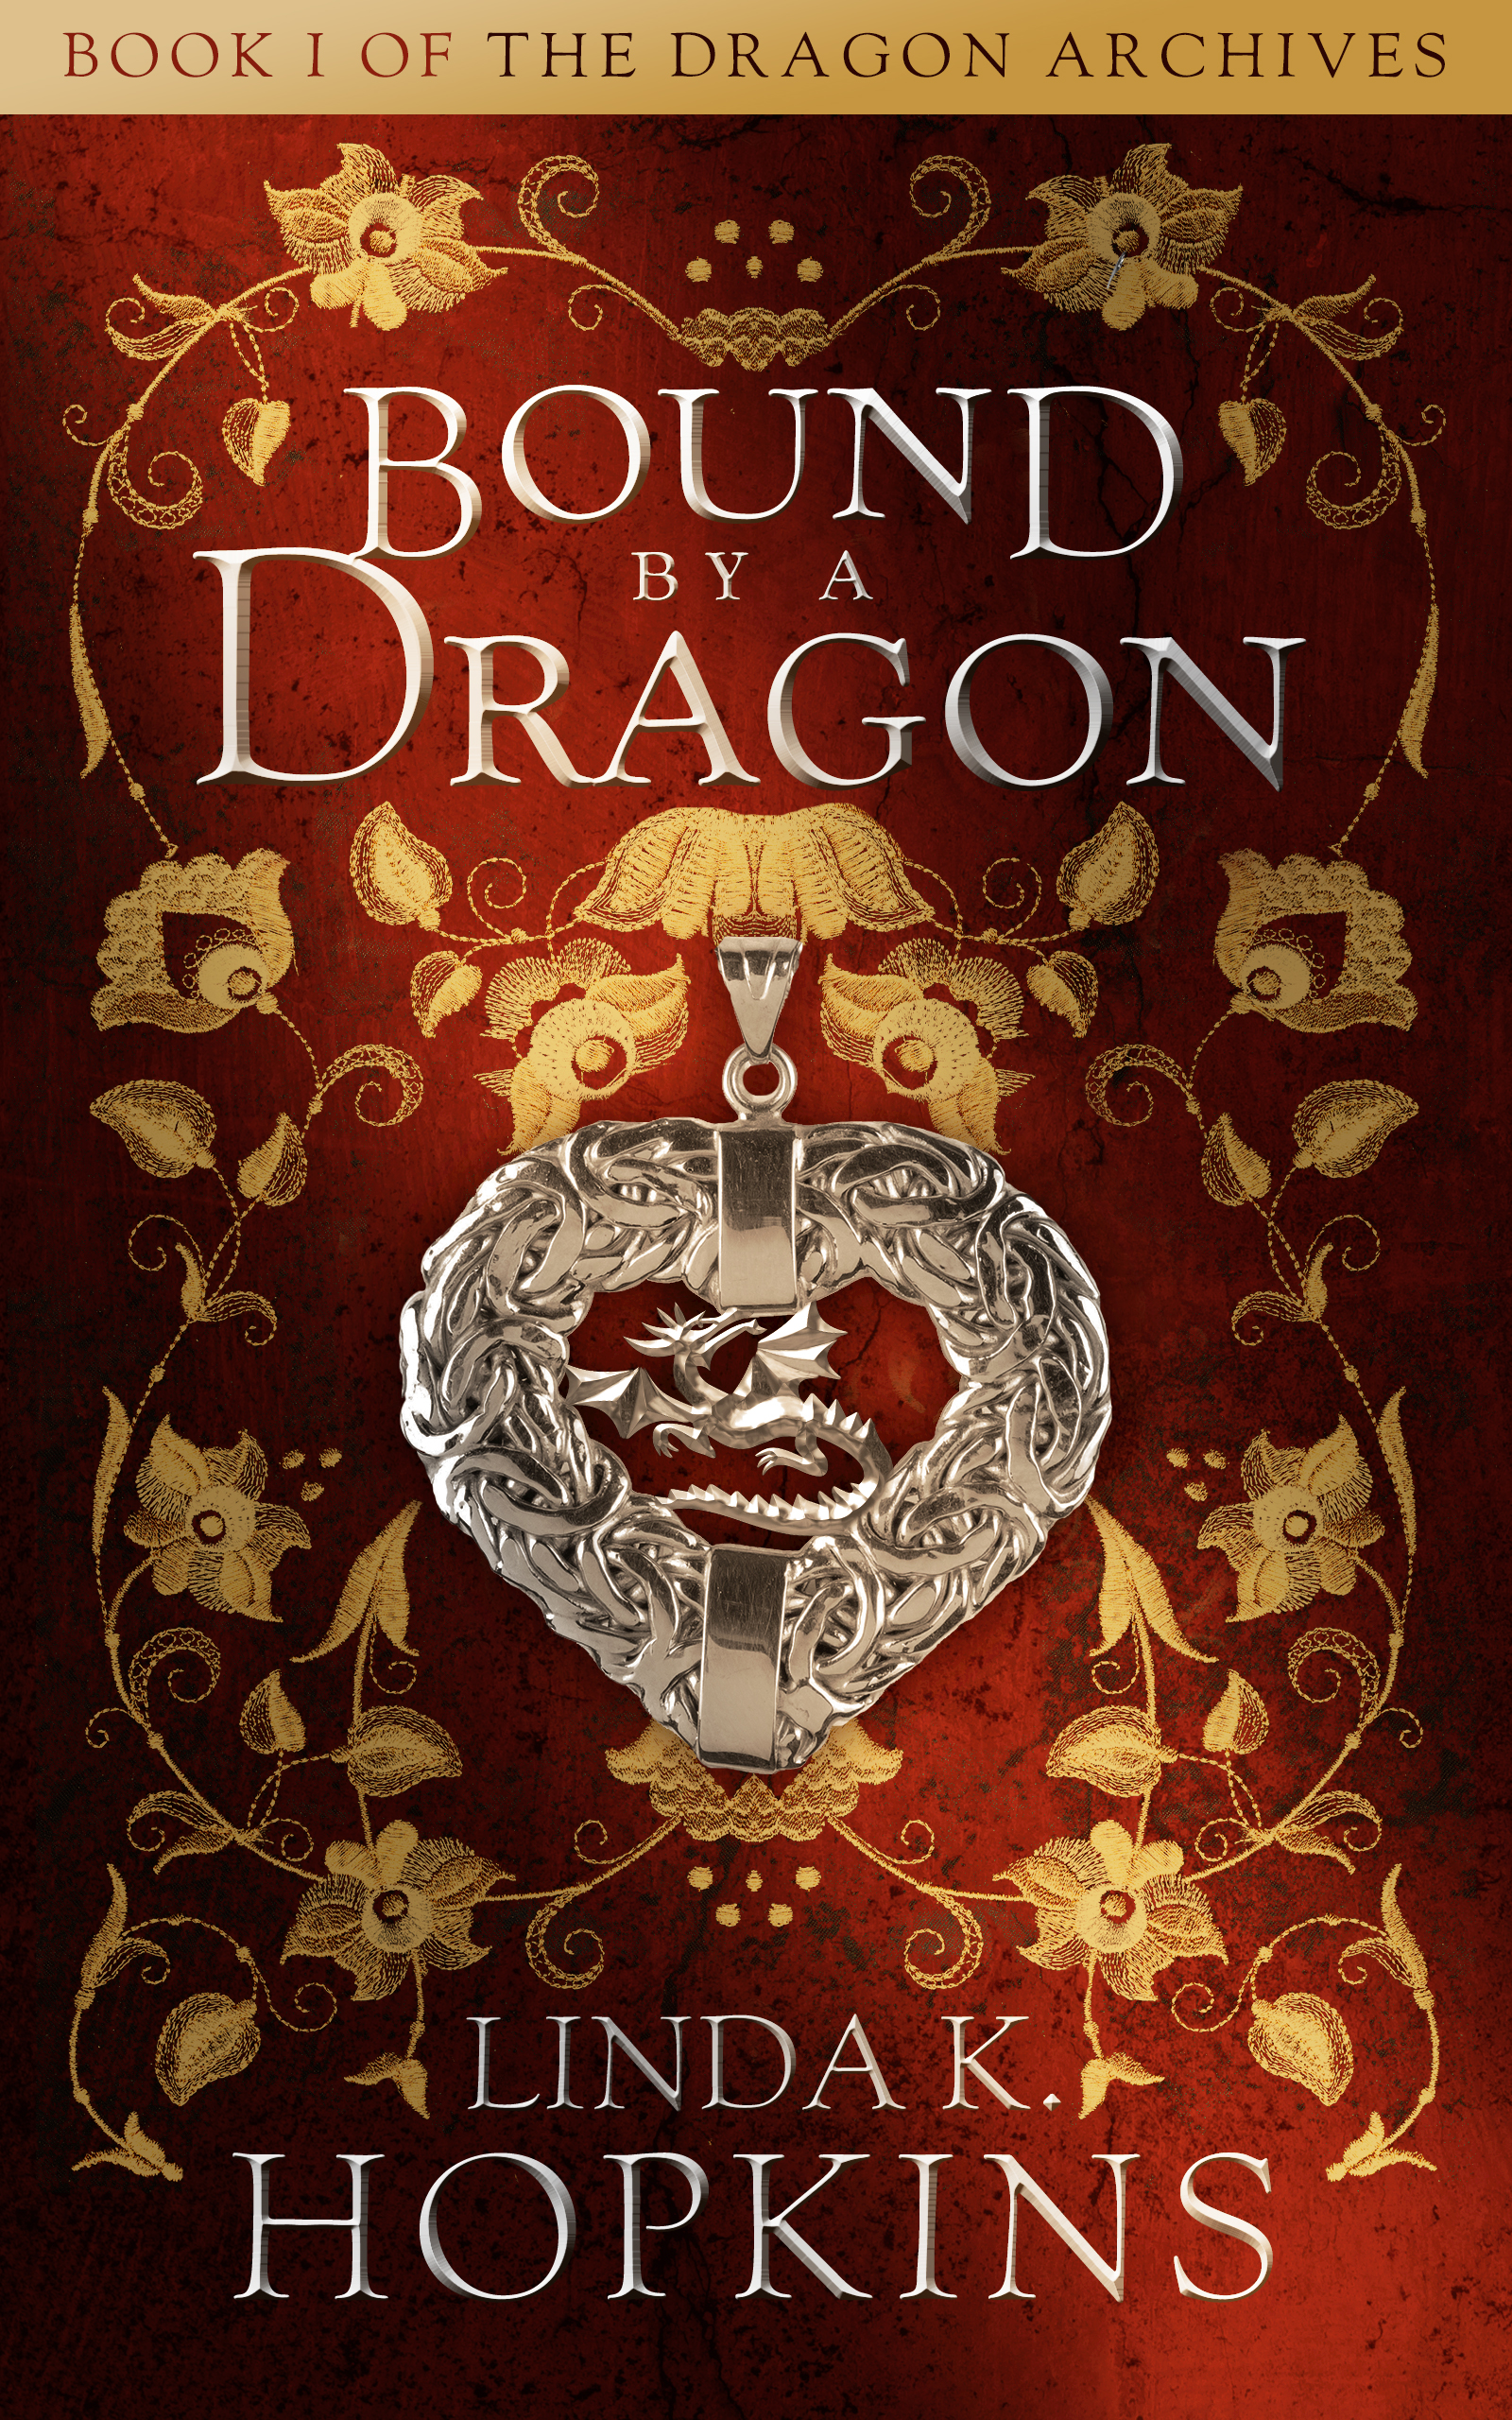 Linda K Hopkins - Book I of The Dragon Archives: Bound by a Dragon